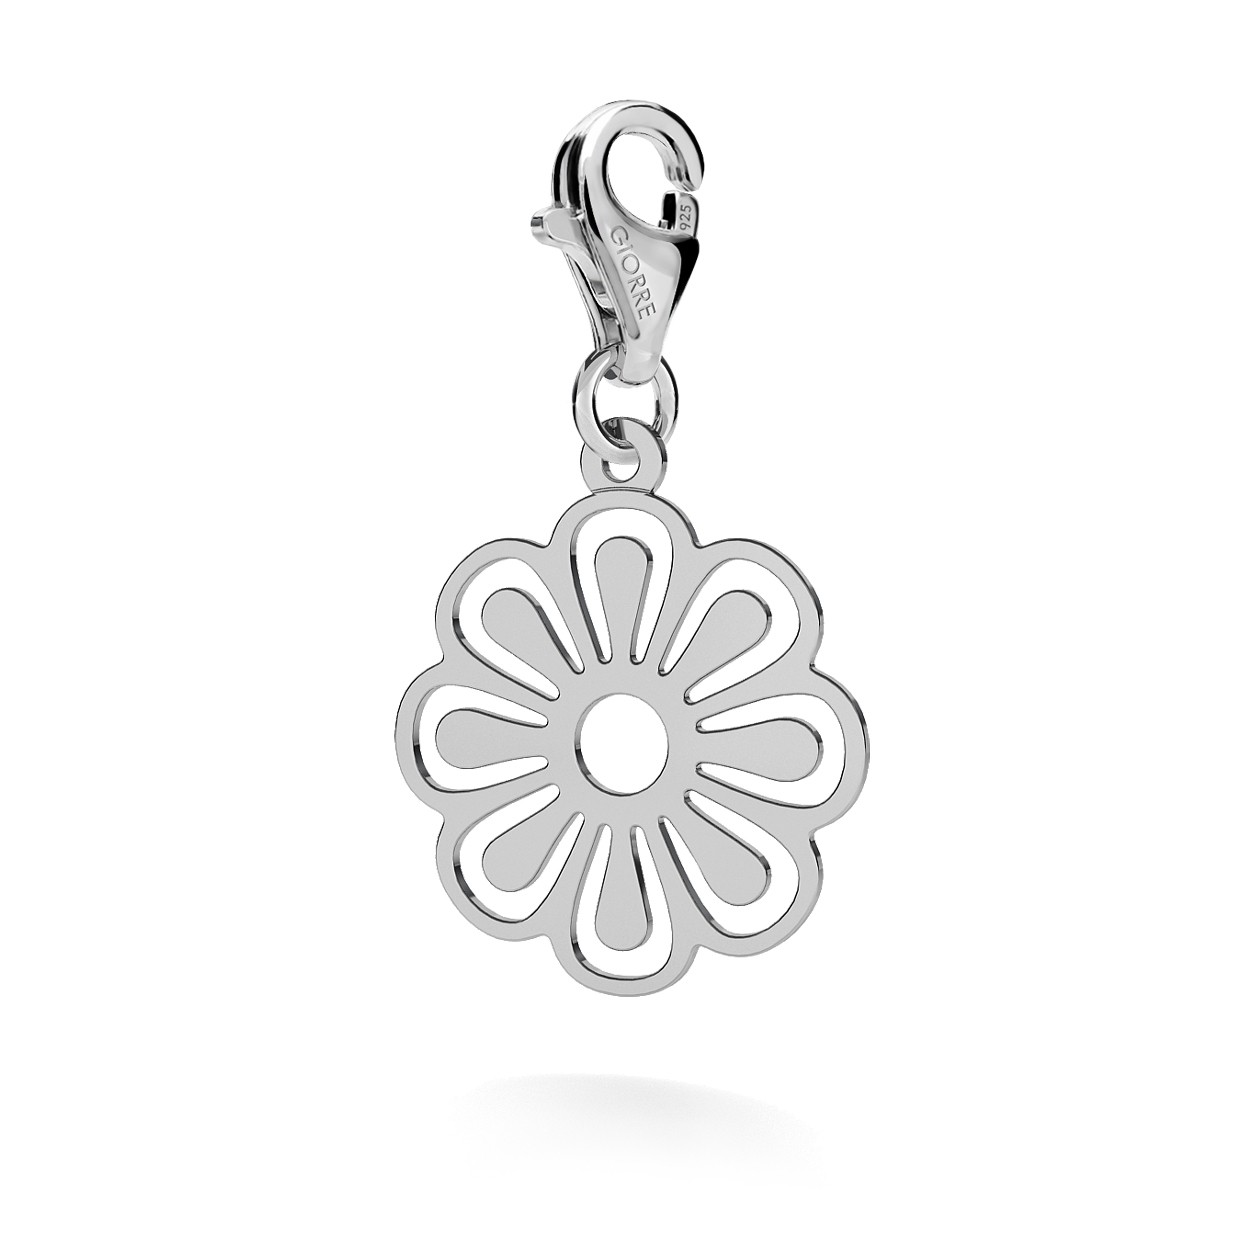 CHARM 56, OPENWORK FLOWER, SILVER 925,  RHODIUM OR GOLD PLATED